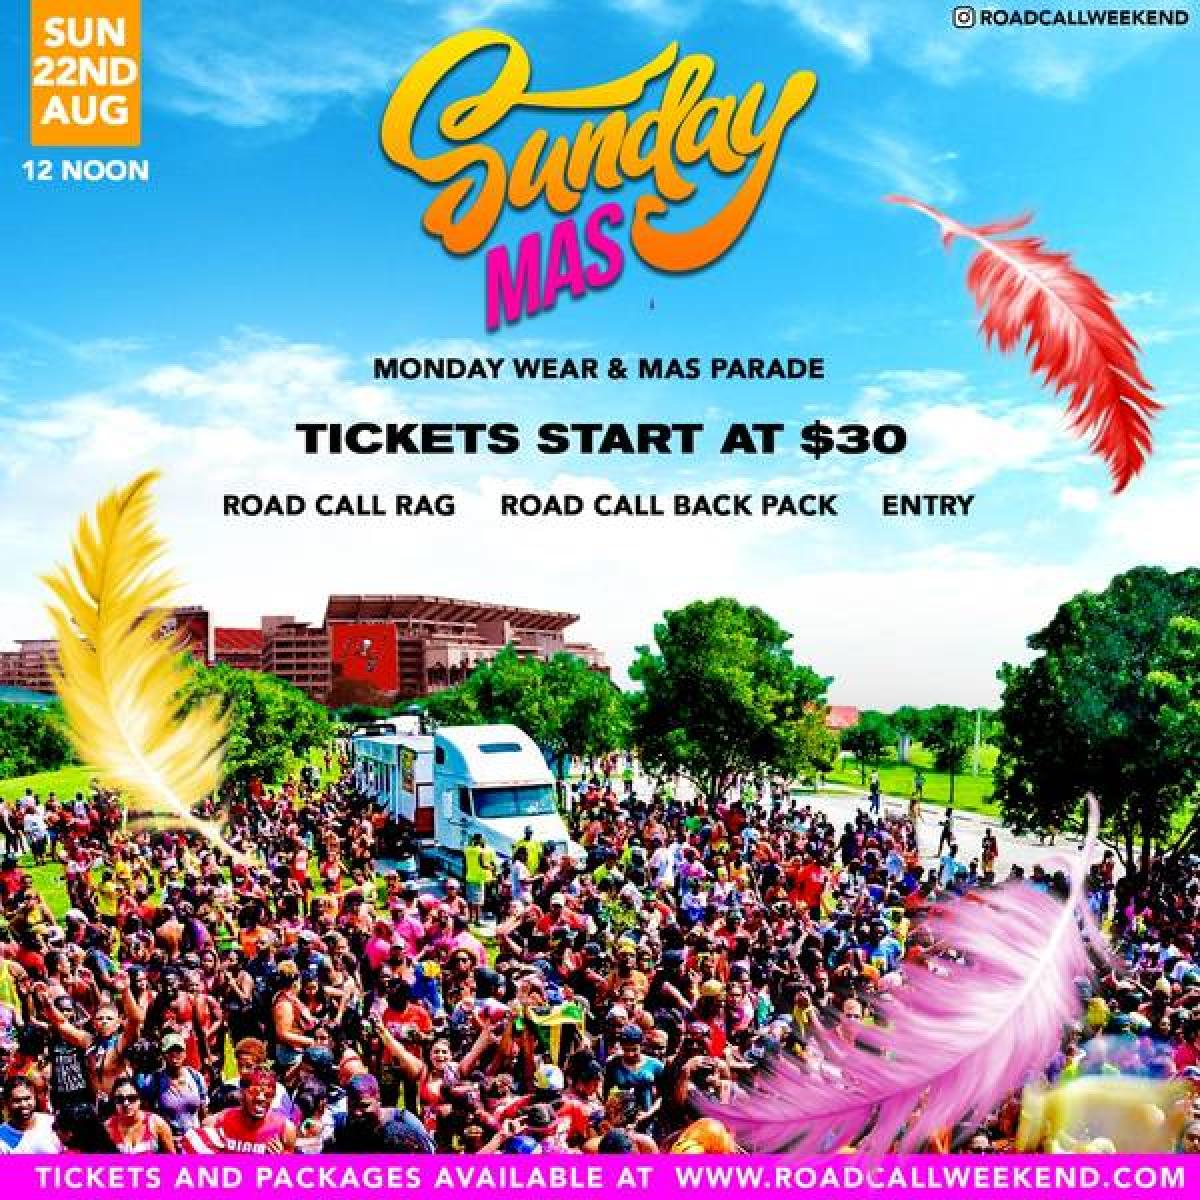 Sunday Mas flyer or graphic.